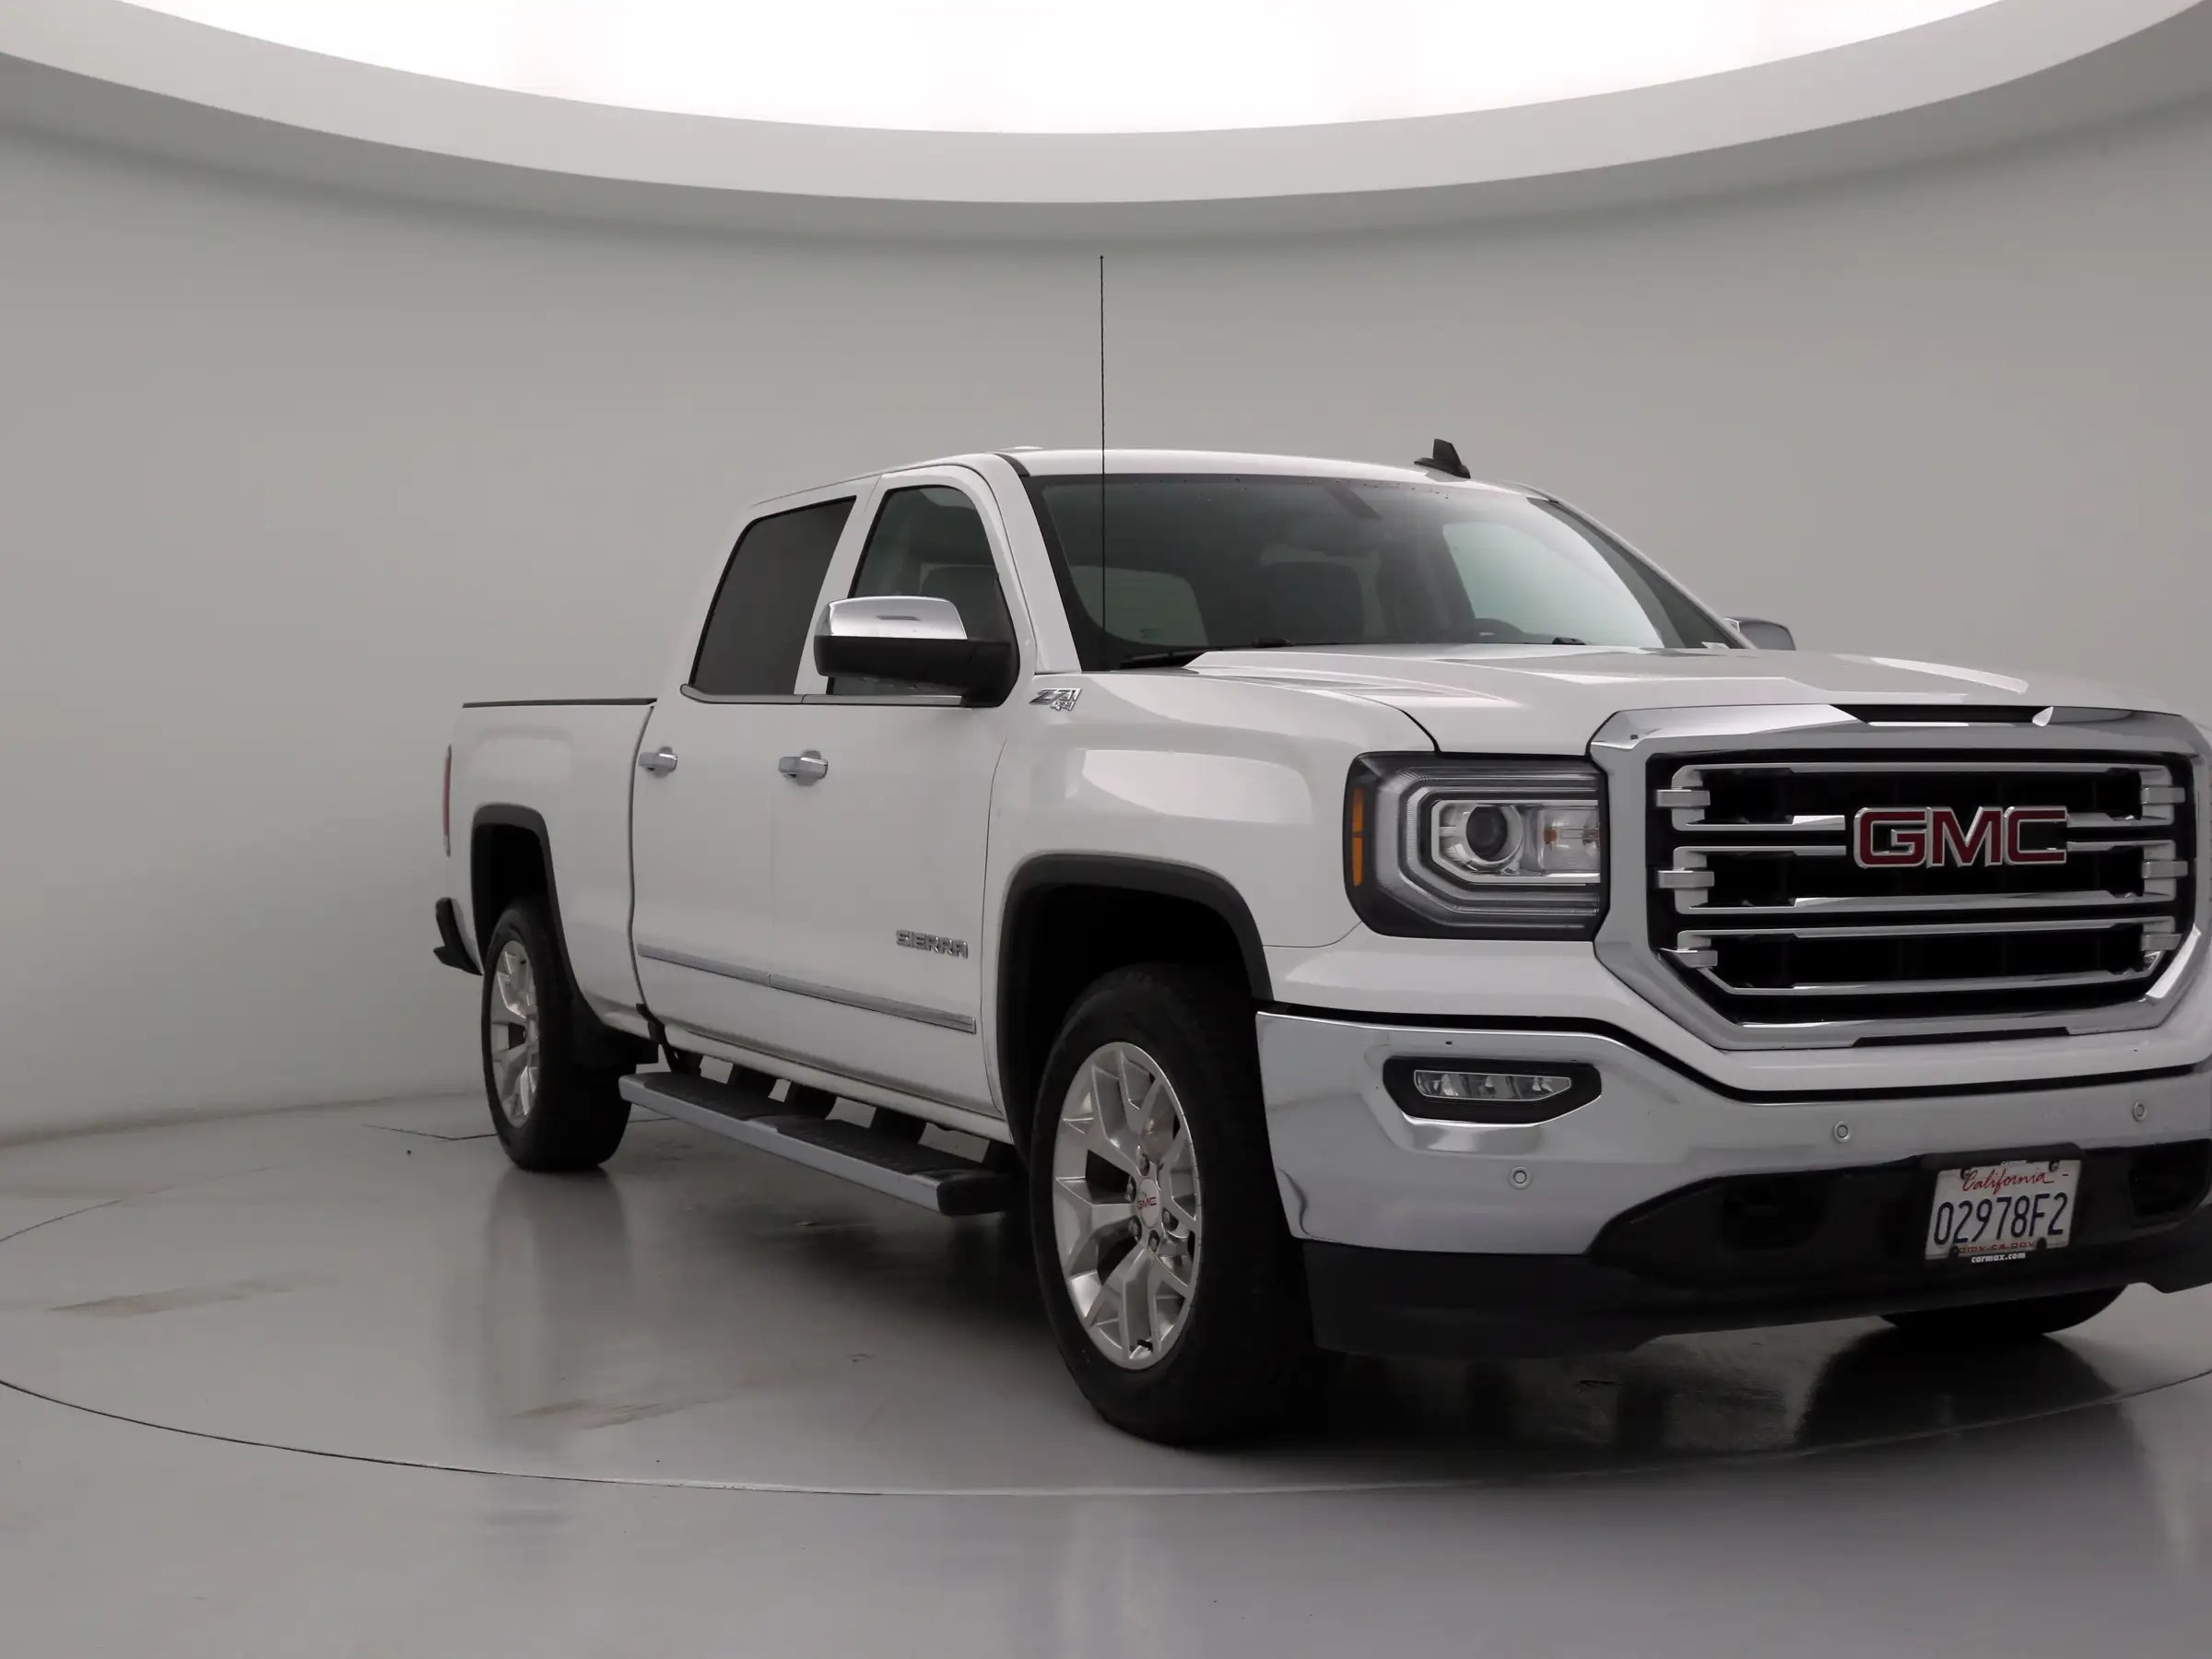 Used GMC Sierra 1500 for Sale